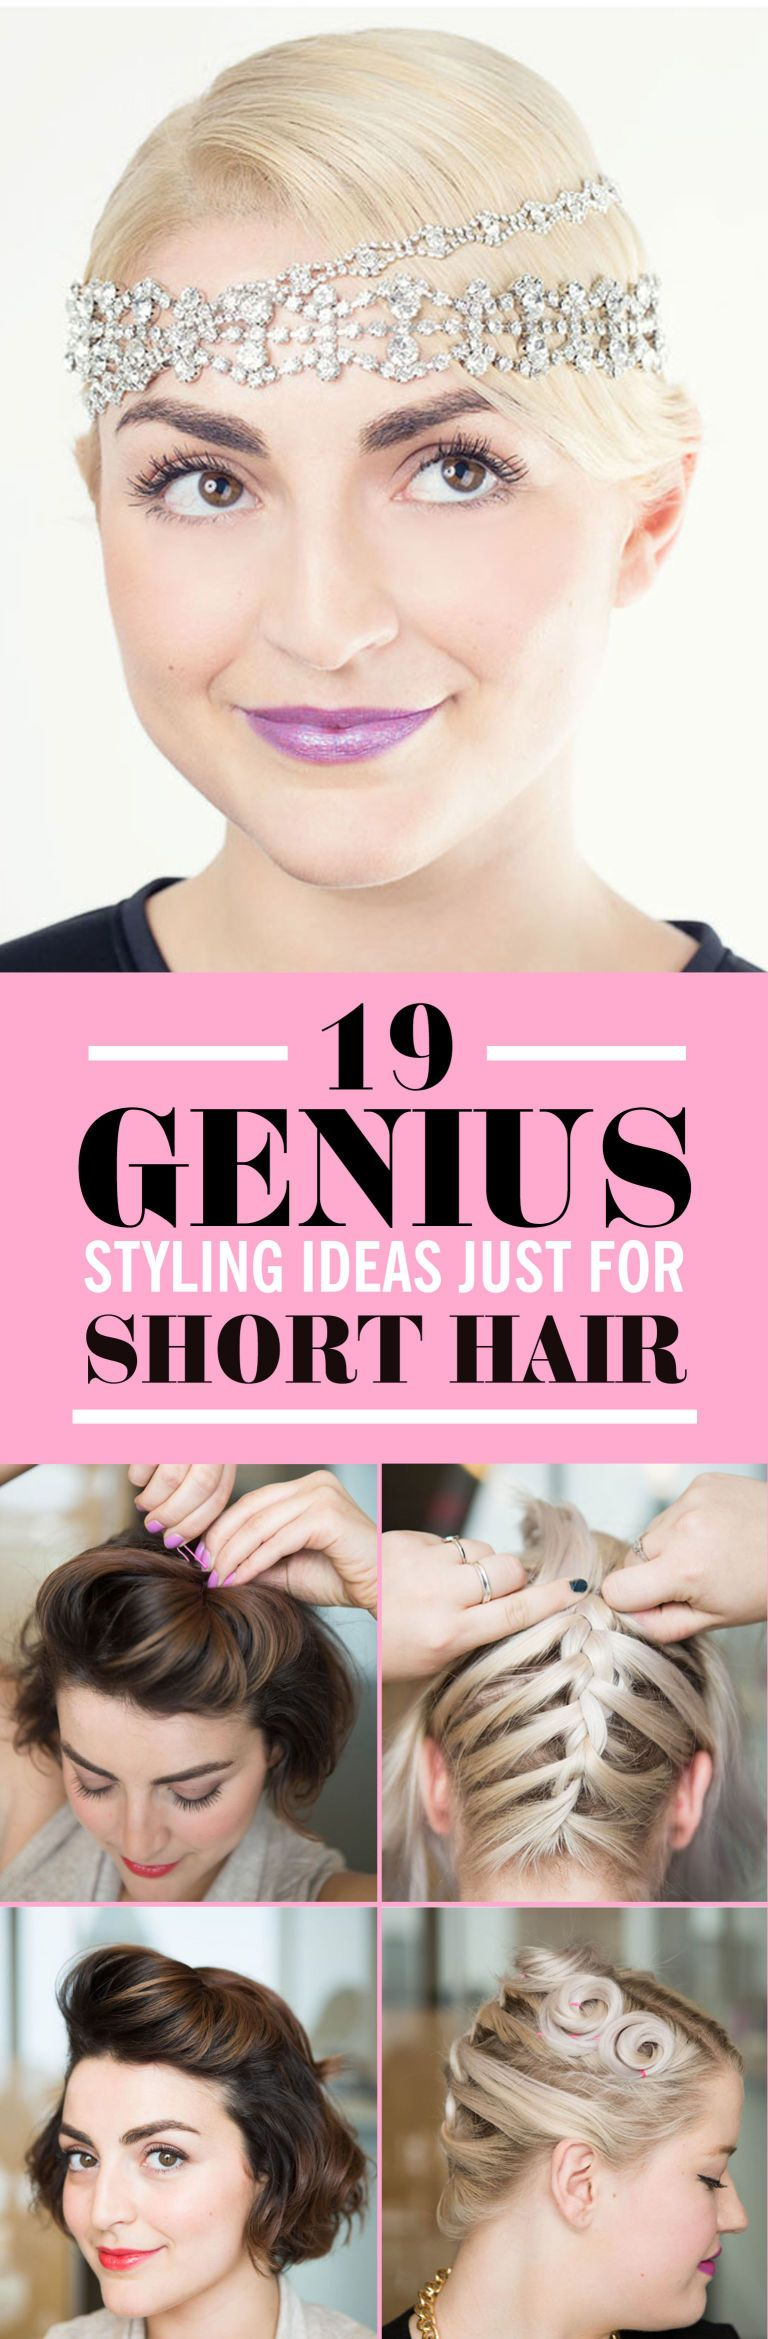 21 Genius Styling Ideas Just for Short Hair